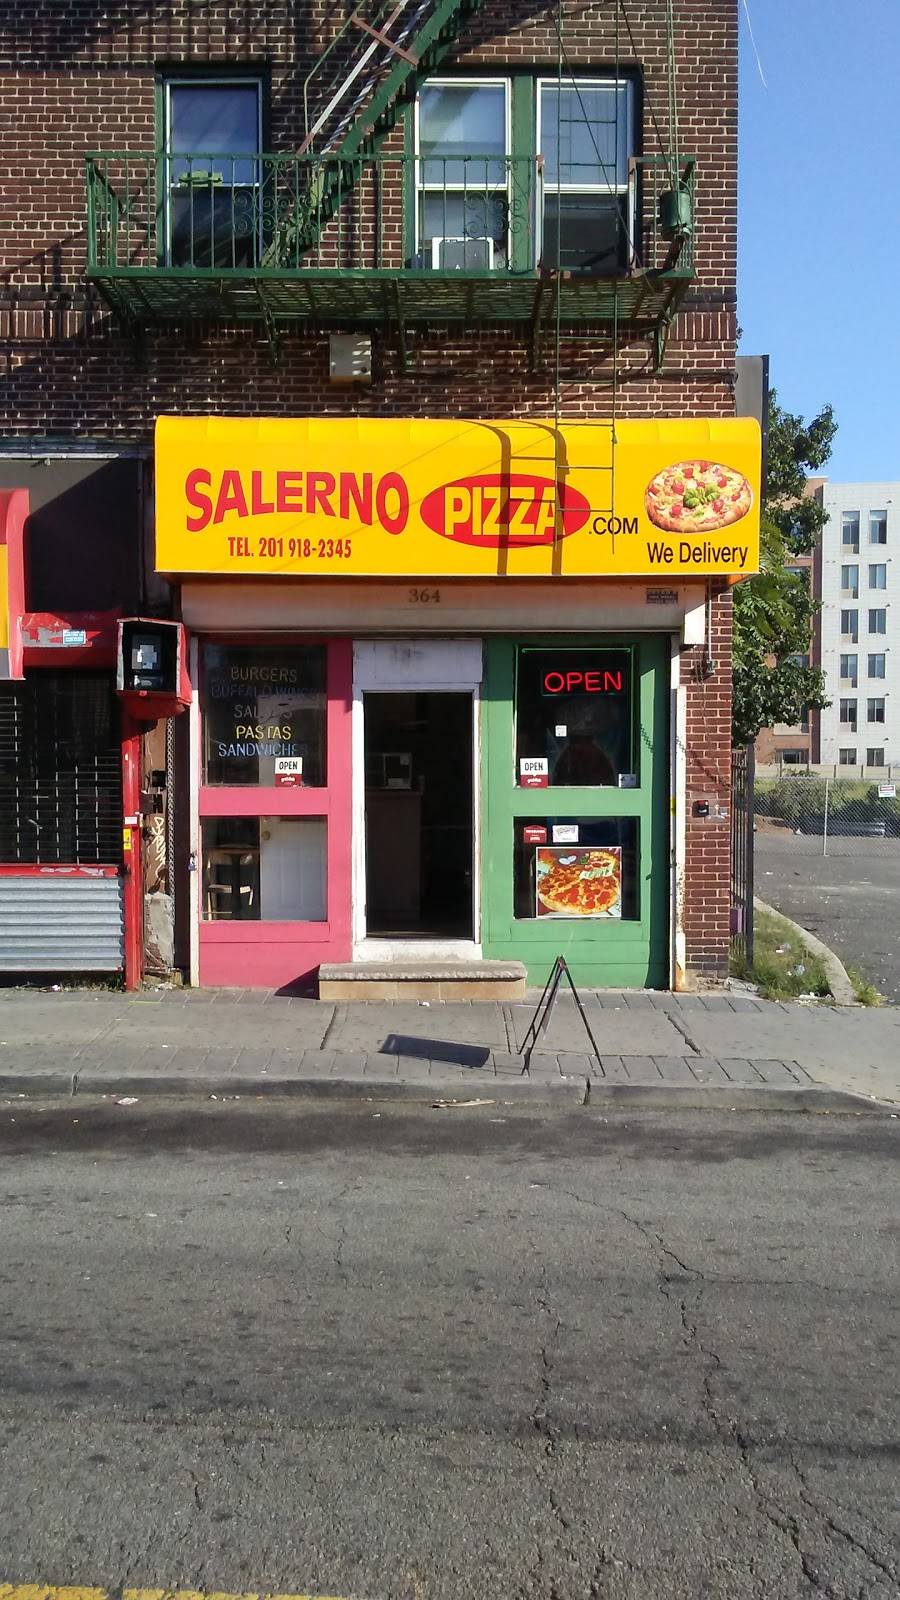 Salerno Pizza | meal delivery | 364 Summit Ave, Jersey City, NJ 07306, USA | 2019182345 OR +1 201-918-2345